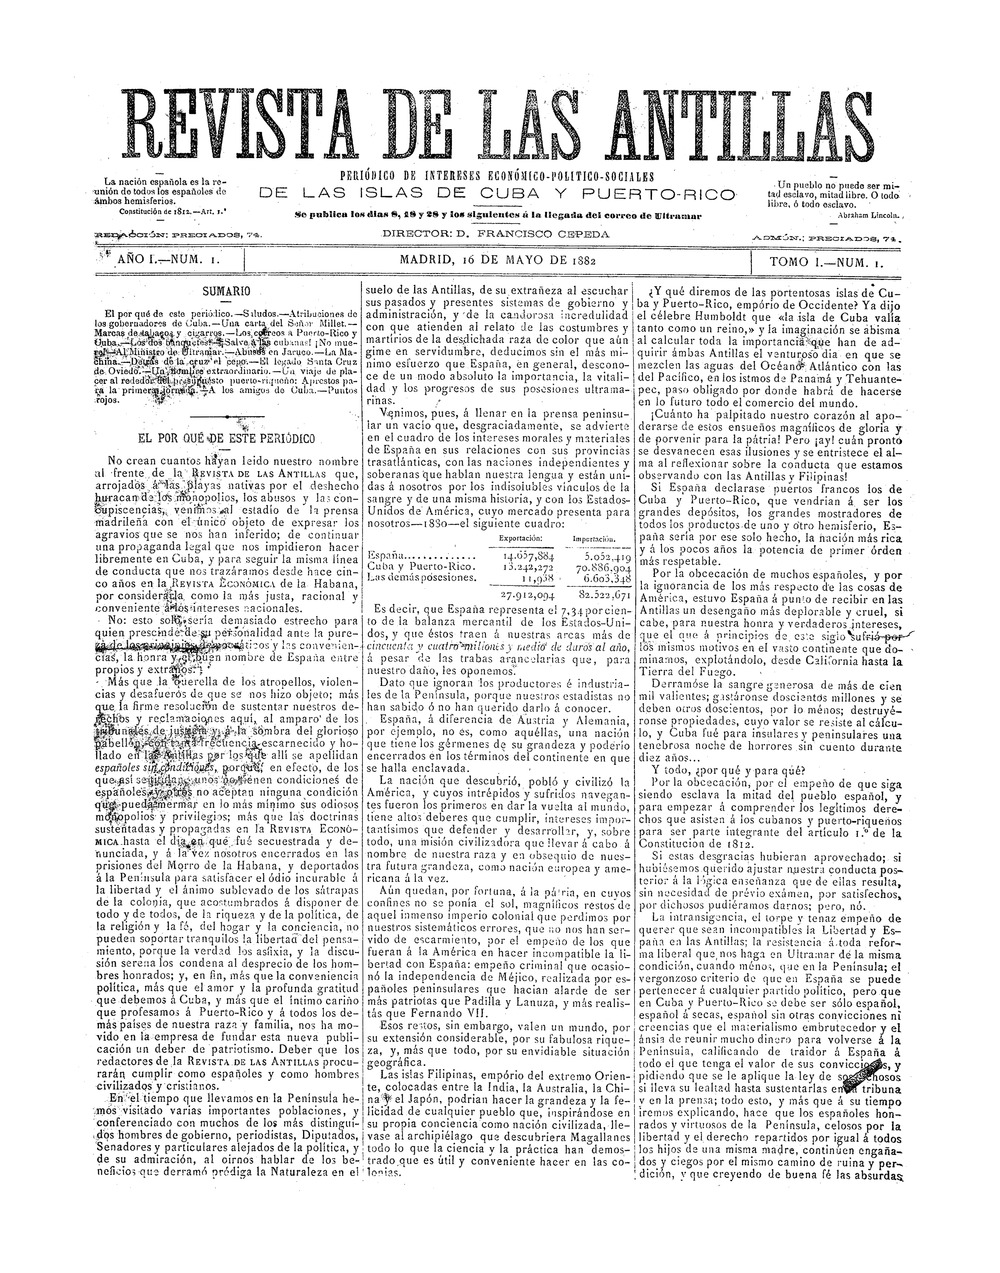 Revista de las Antillas - Page 1